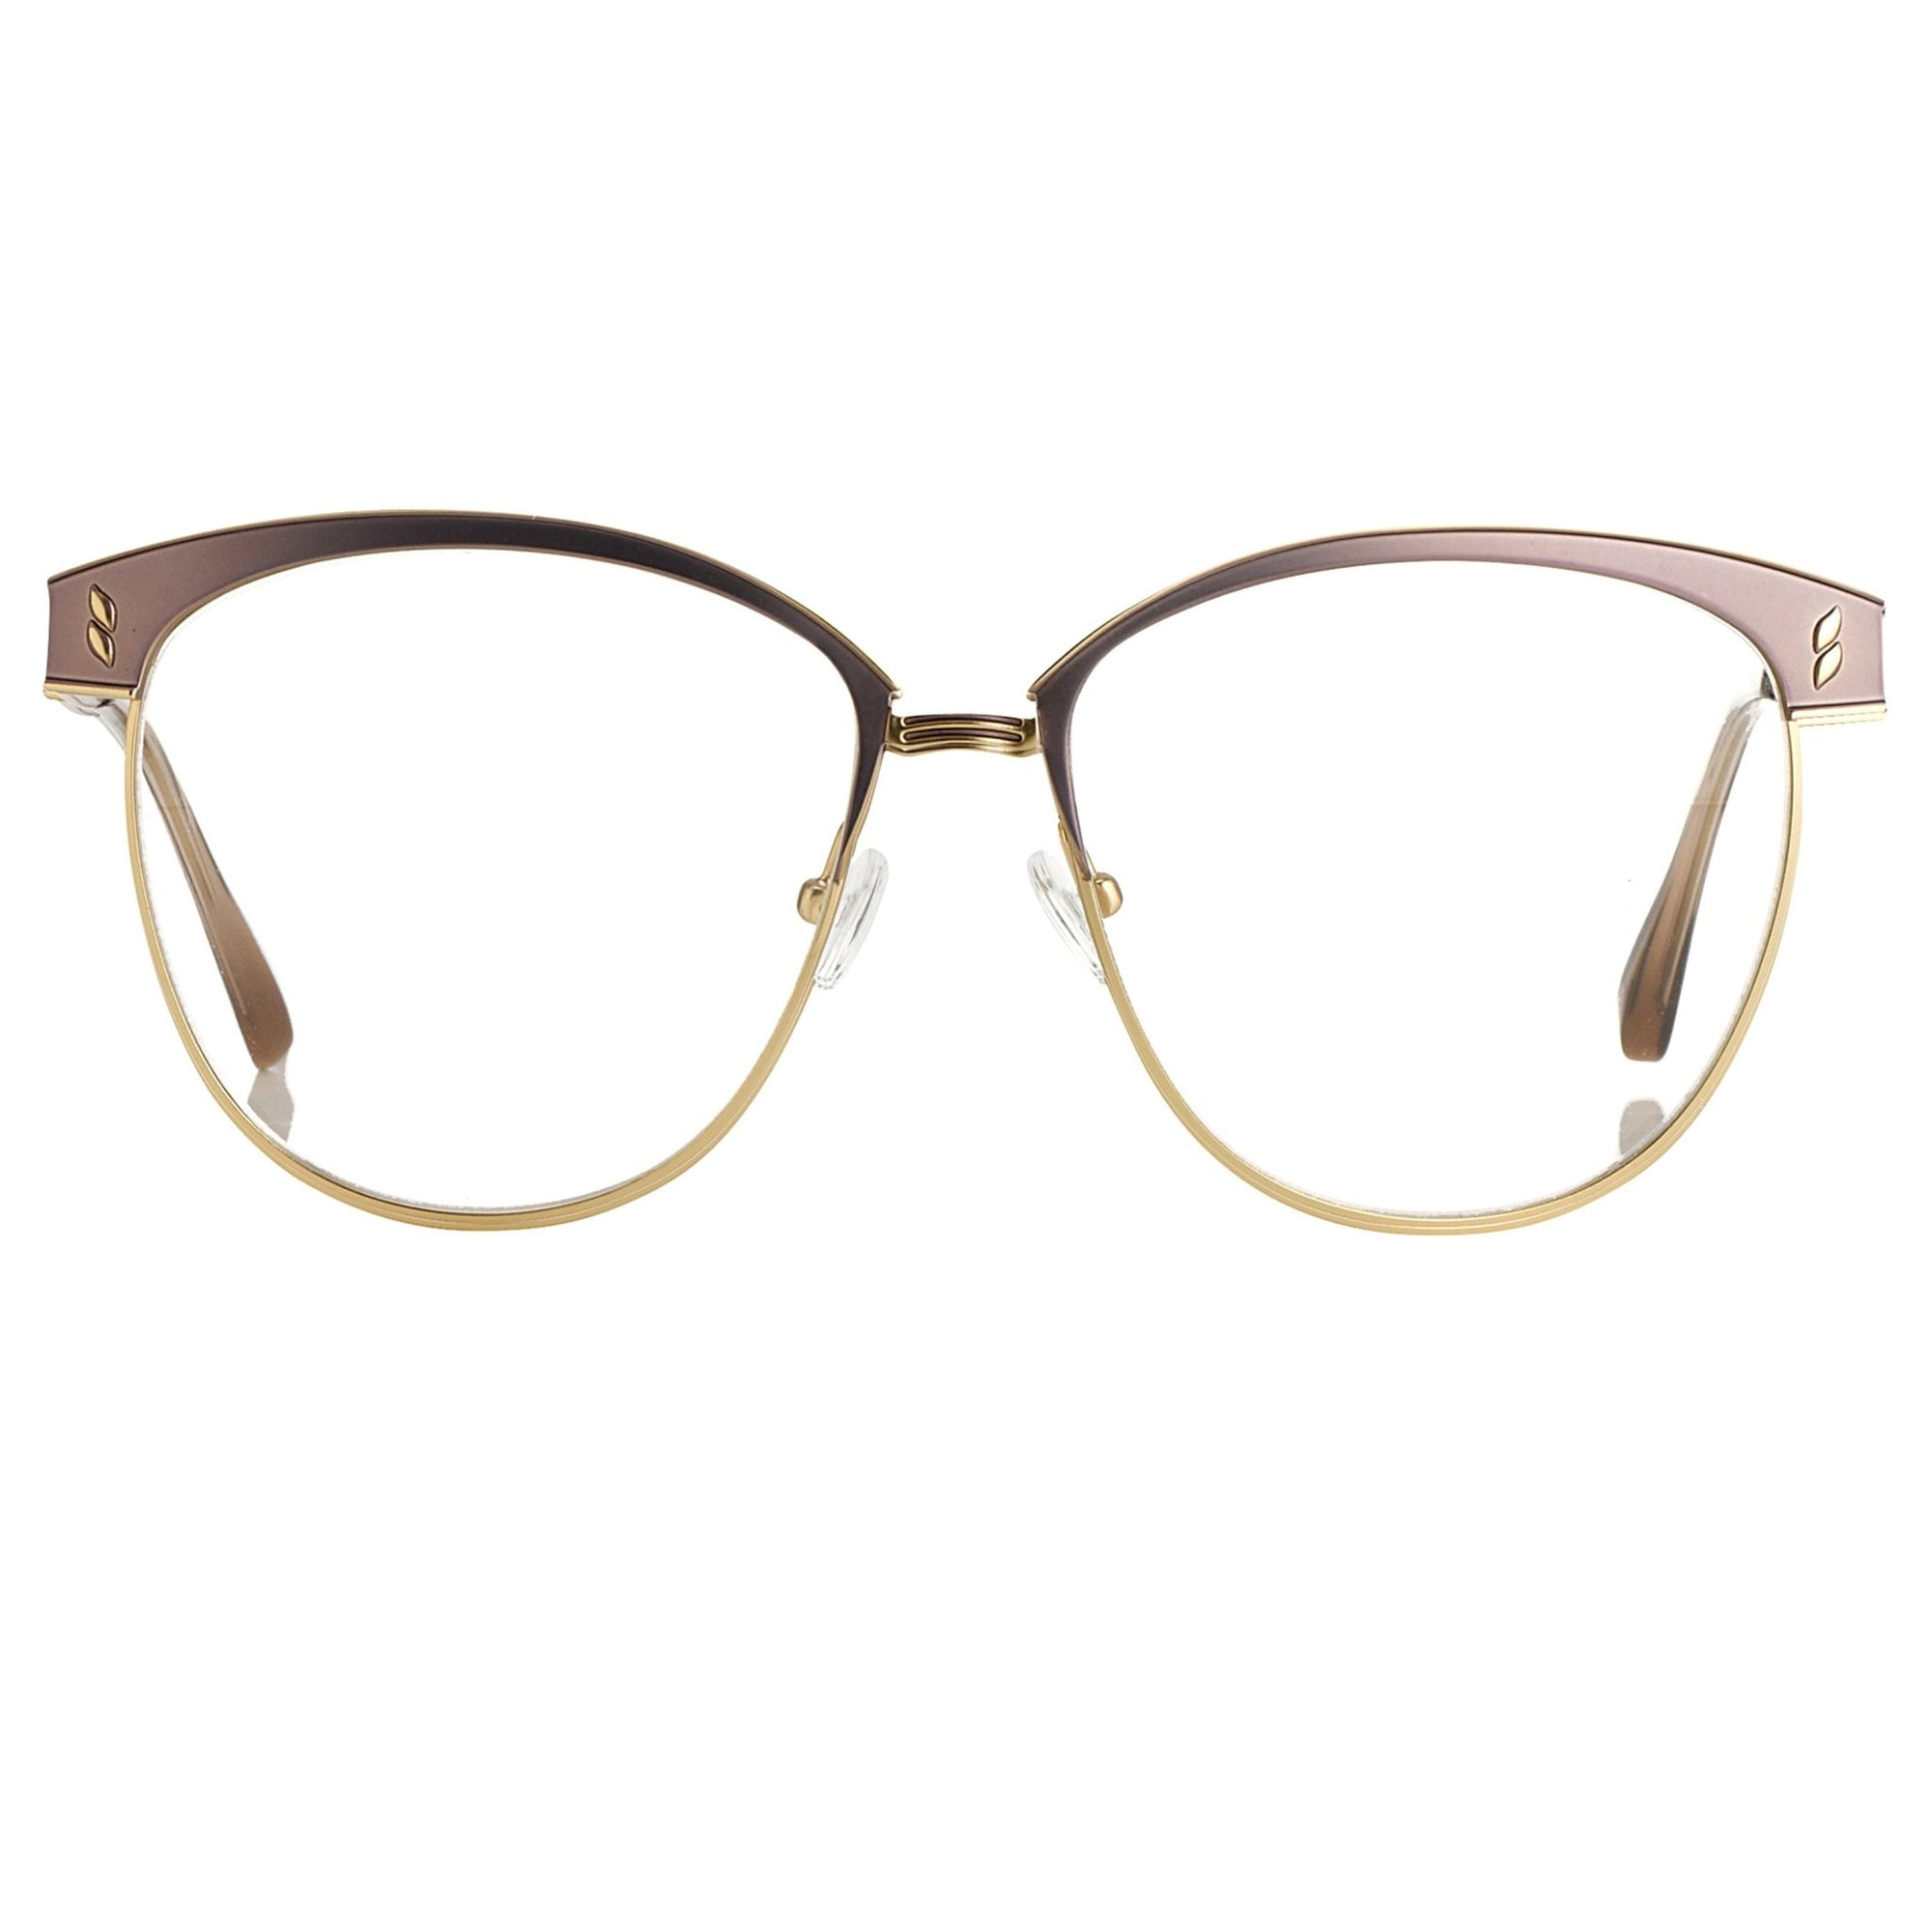 Agent Provocateur Eyeglasses Oval Brown/Gold - Watches & Crystals